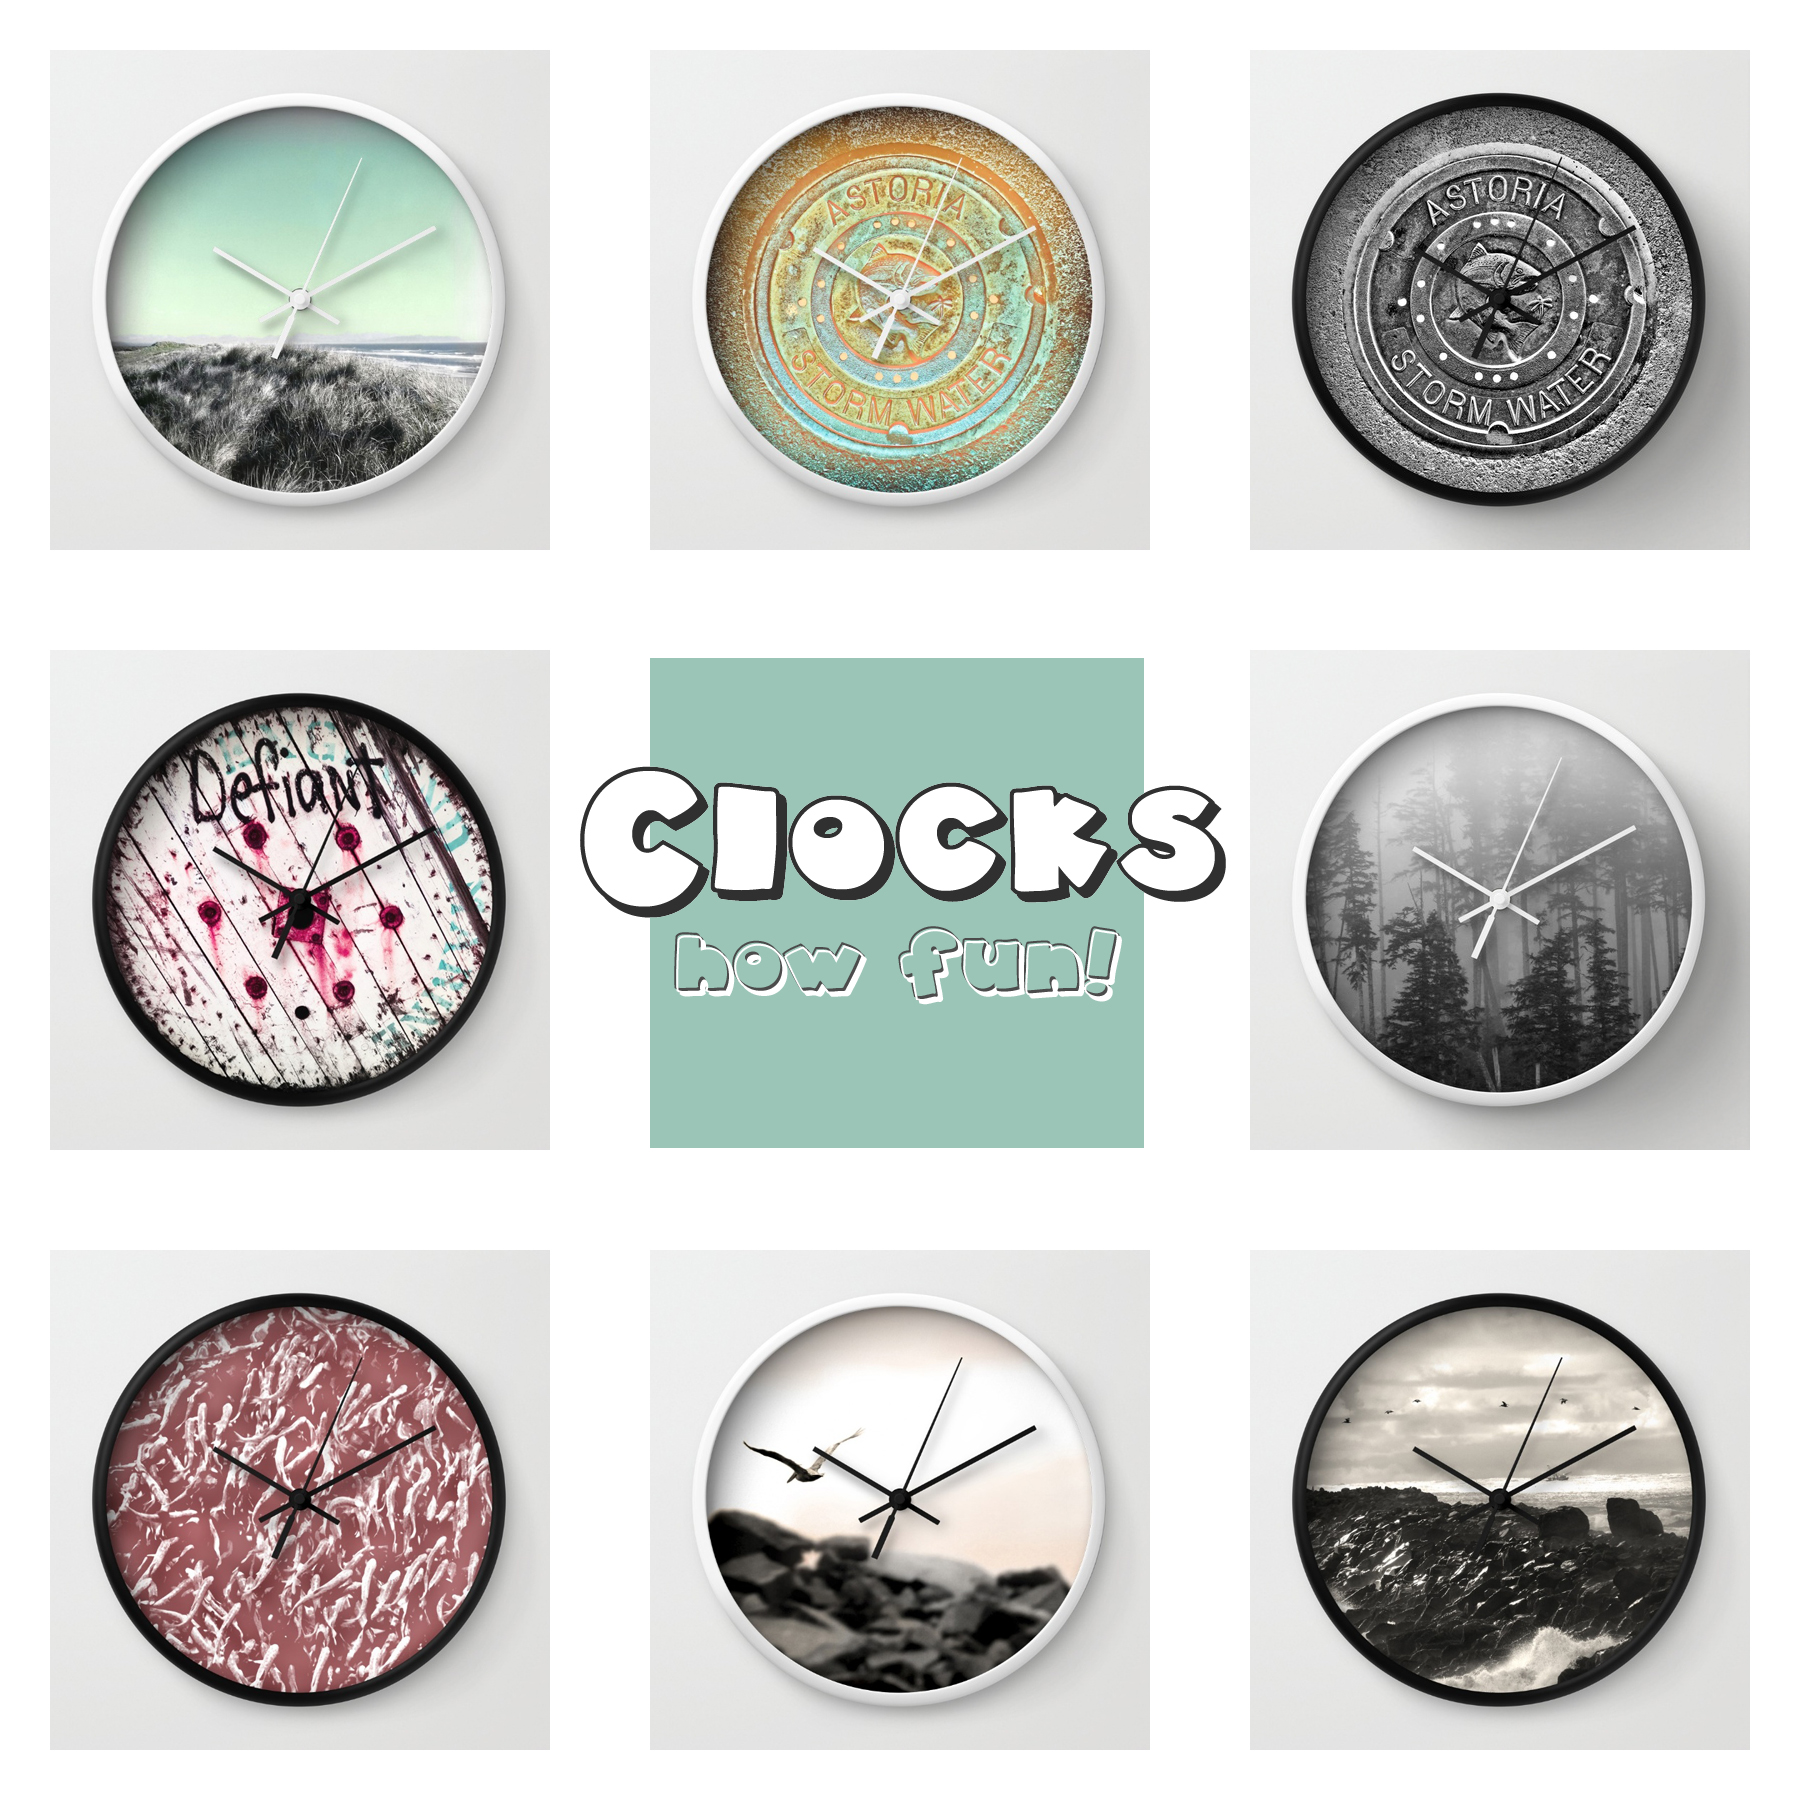 wall-clocks-kim-rose-adams-photography-artist-blog-web